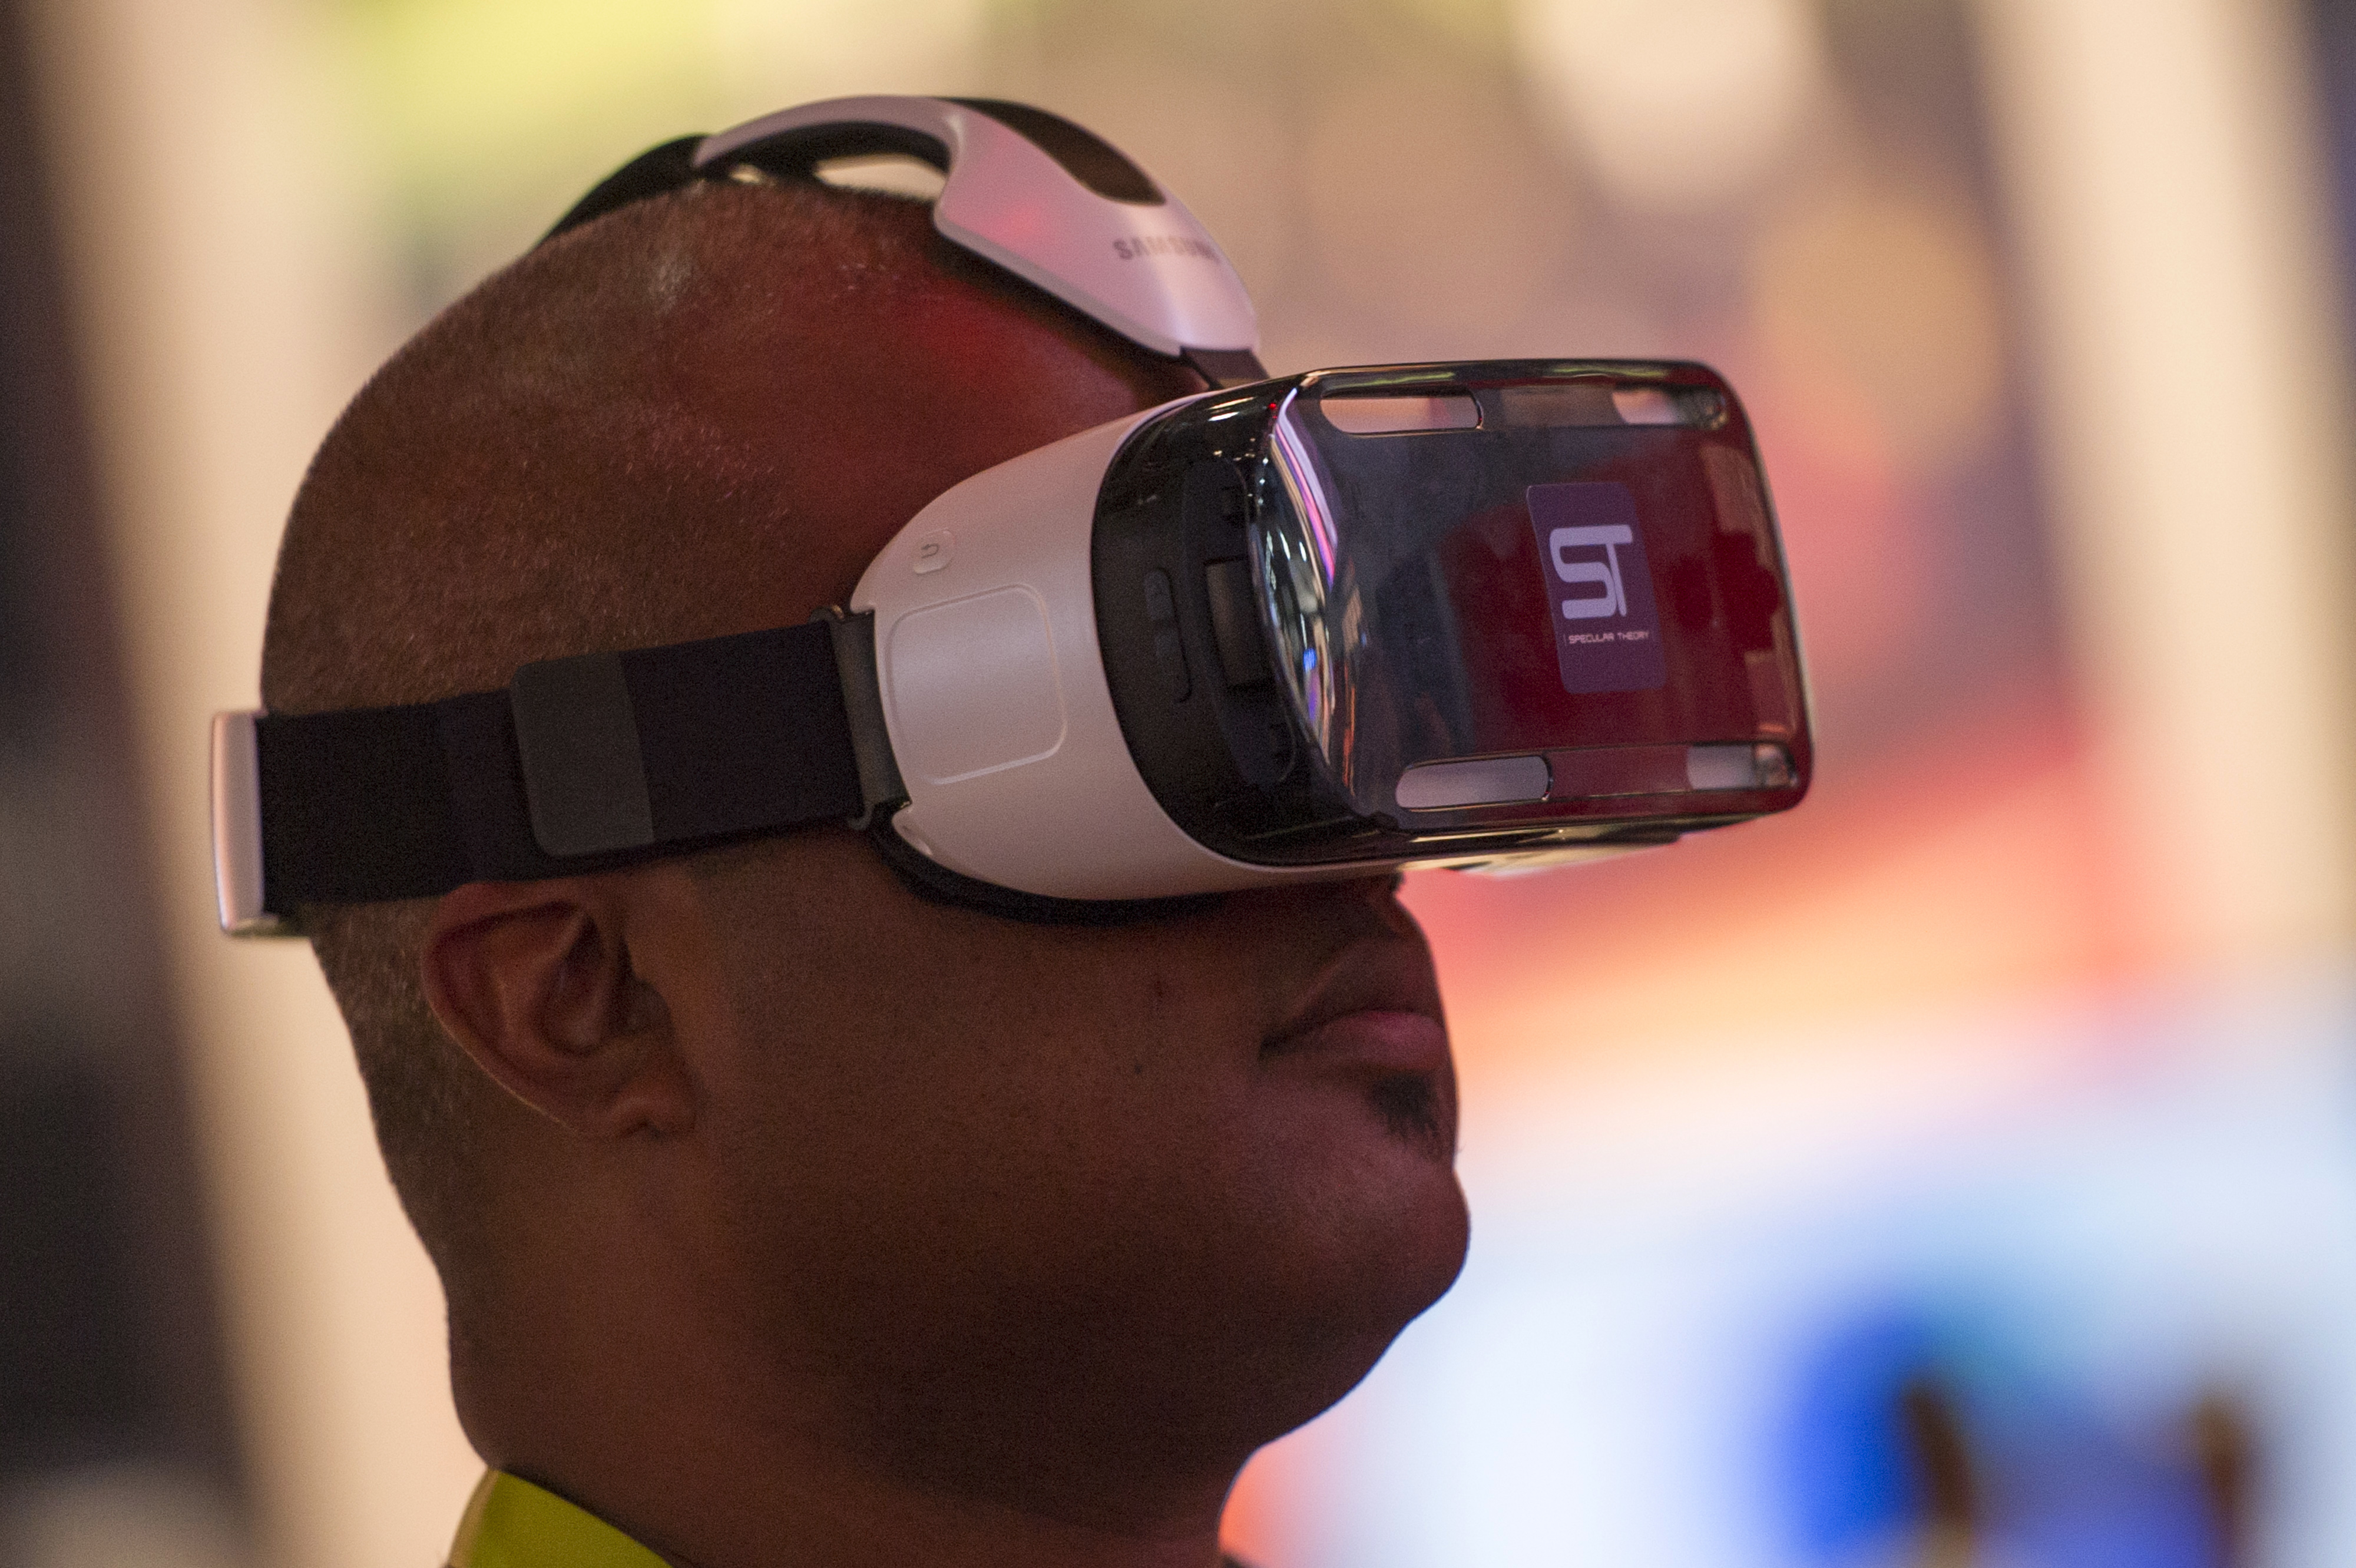 An attendee tries out a Samsung Gear VR headset during the 2015 Consumer Electronics Show (CES) on Jan. 6, 2015.